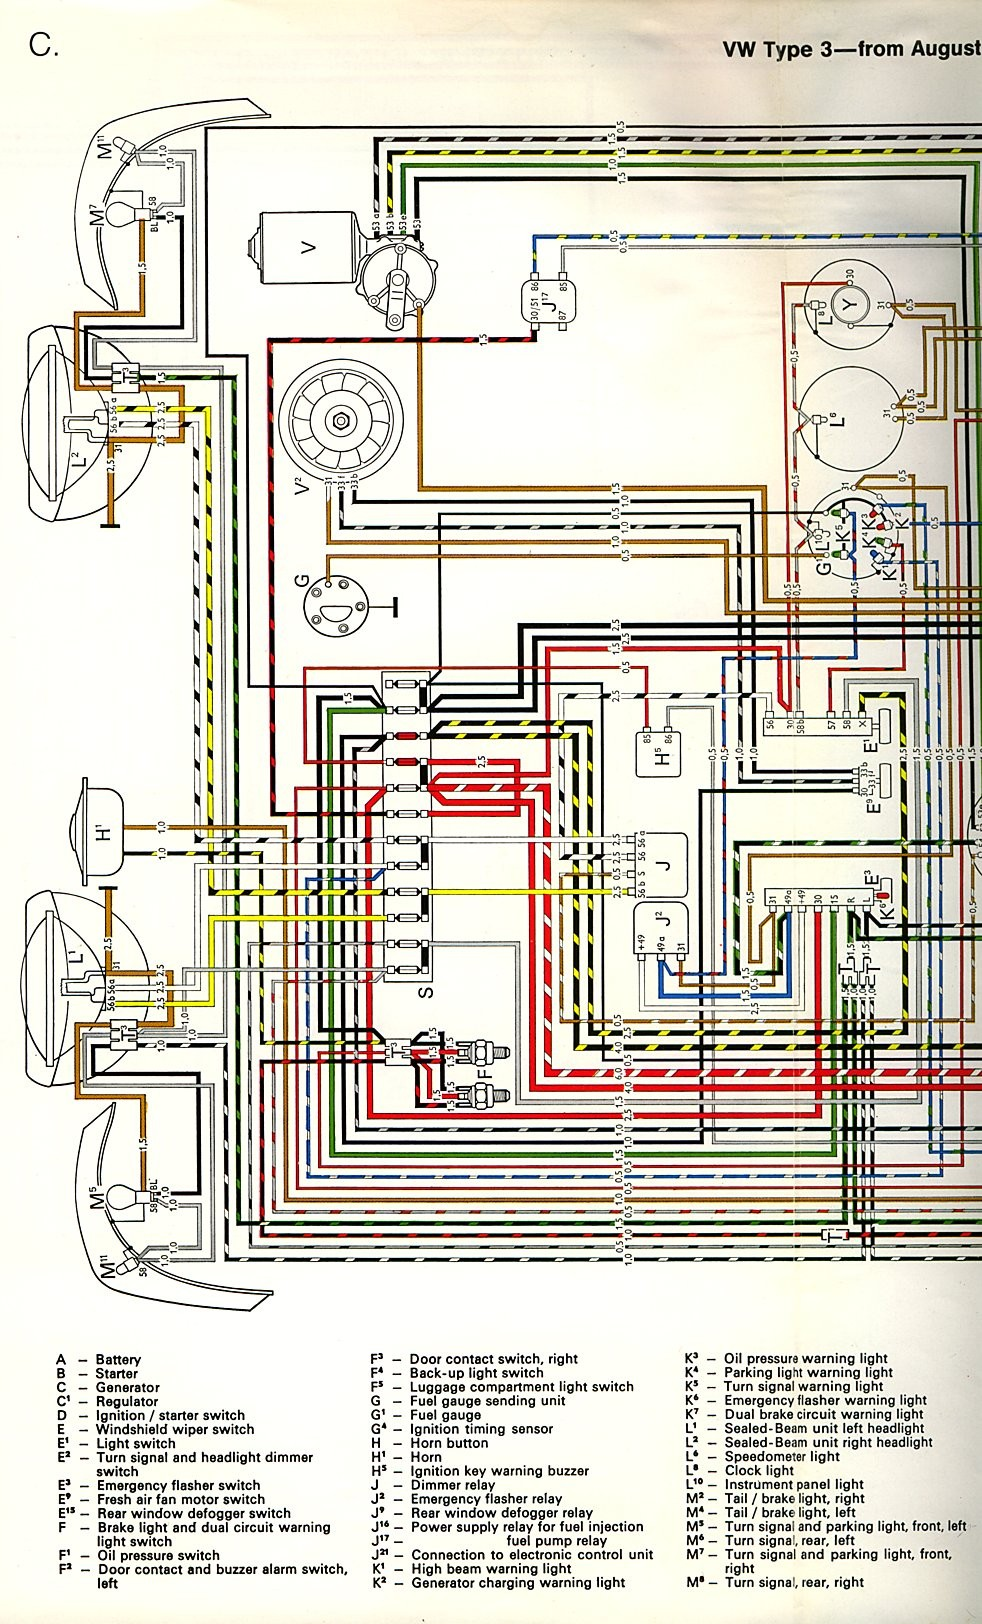 medium resolution of thesamba type 3 wiring diagrams rh thesamba diagram vw bus fuse box diagram 72